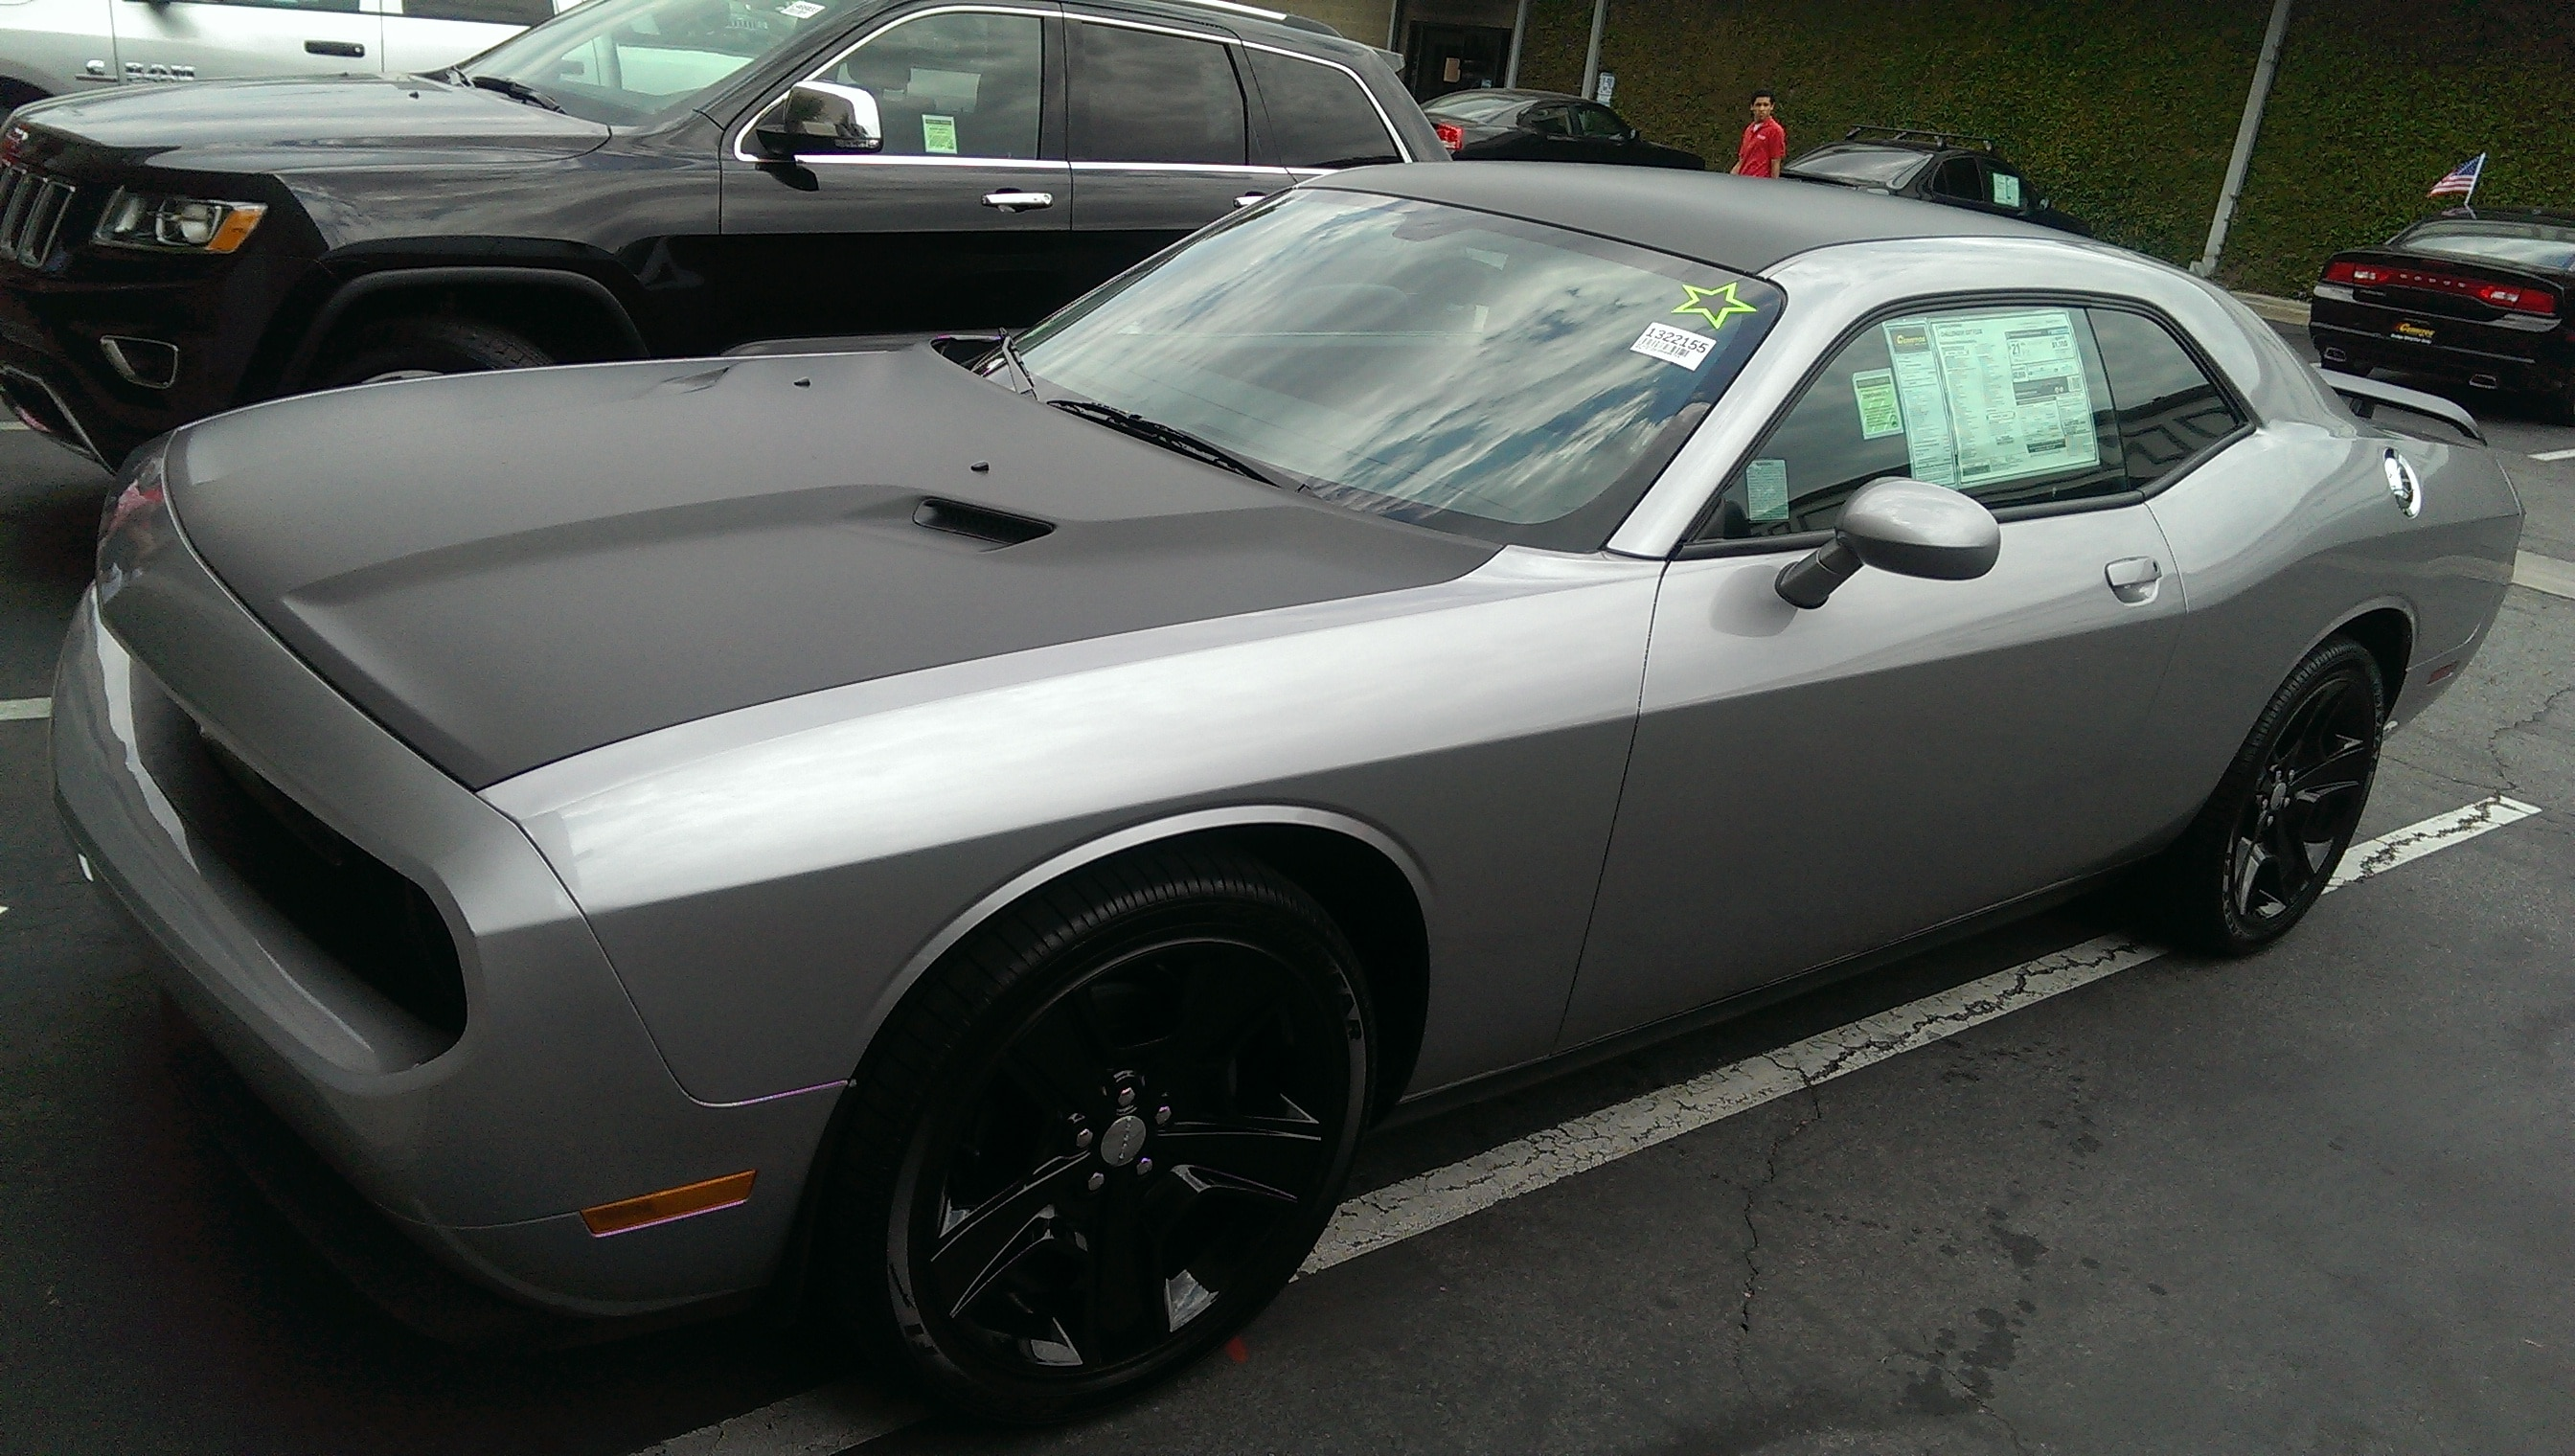 Marvelous 2013 Dodge Challenger Custom Parts Aratorn